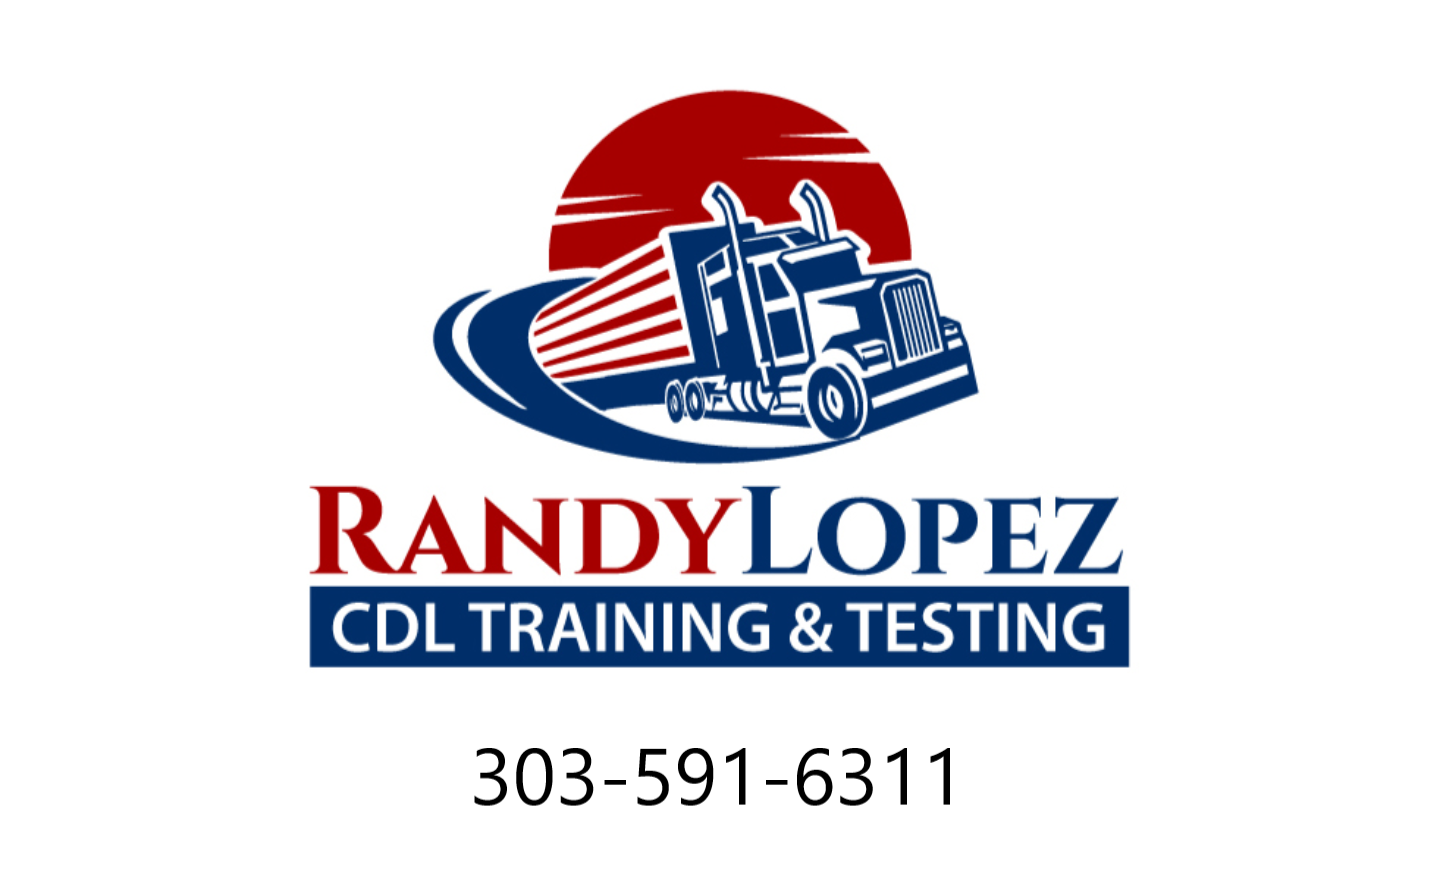 Randy Lopez CDL Testing and Training